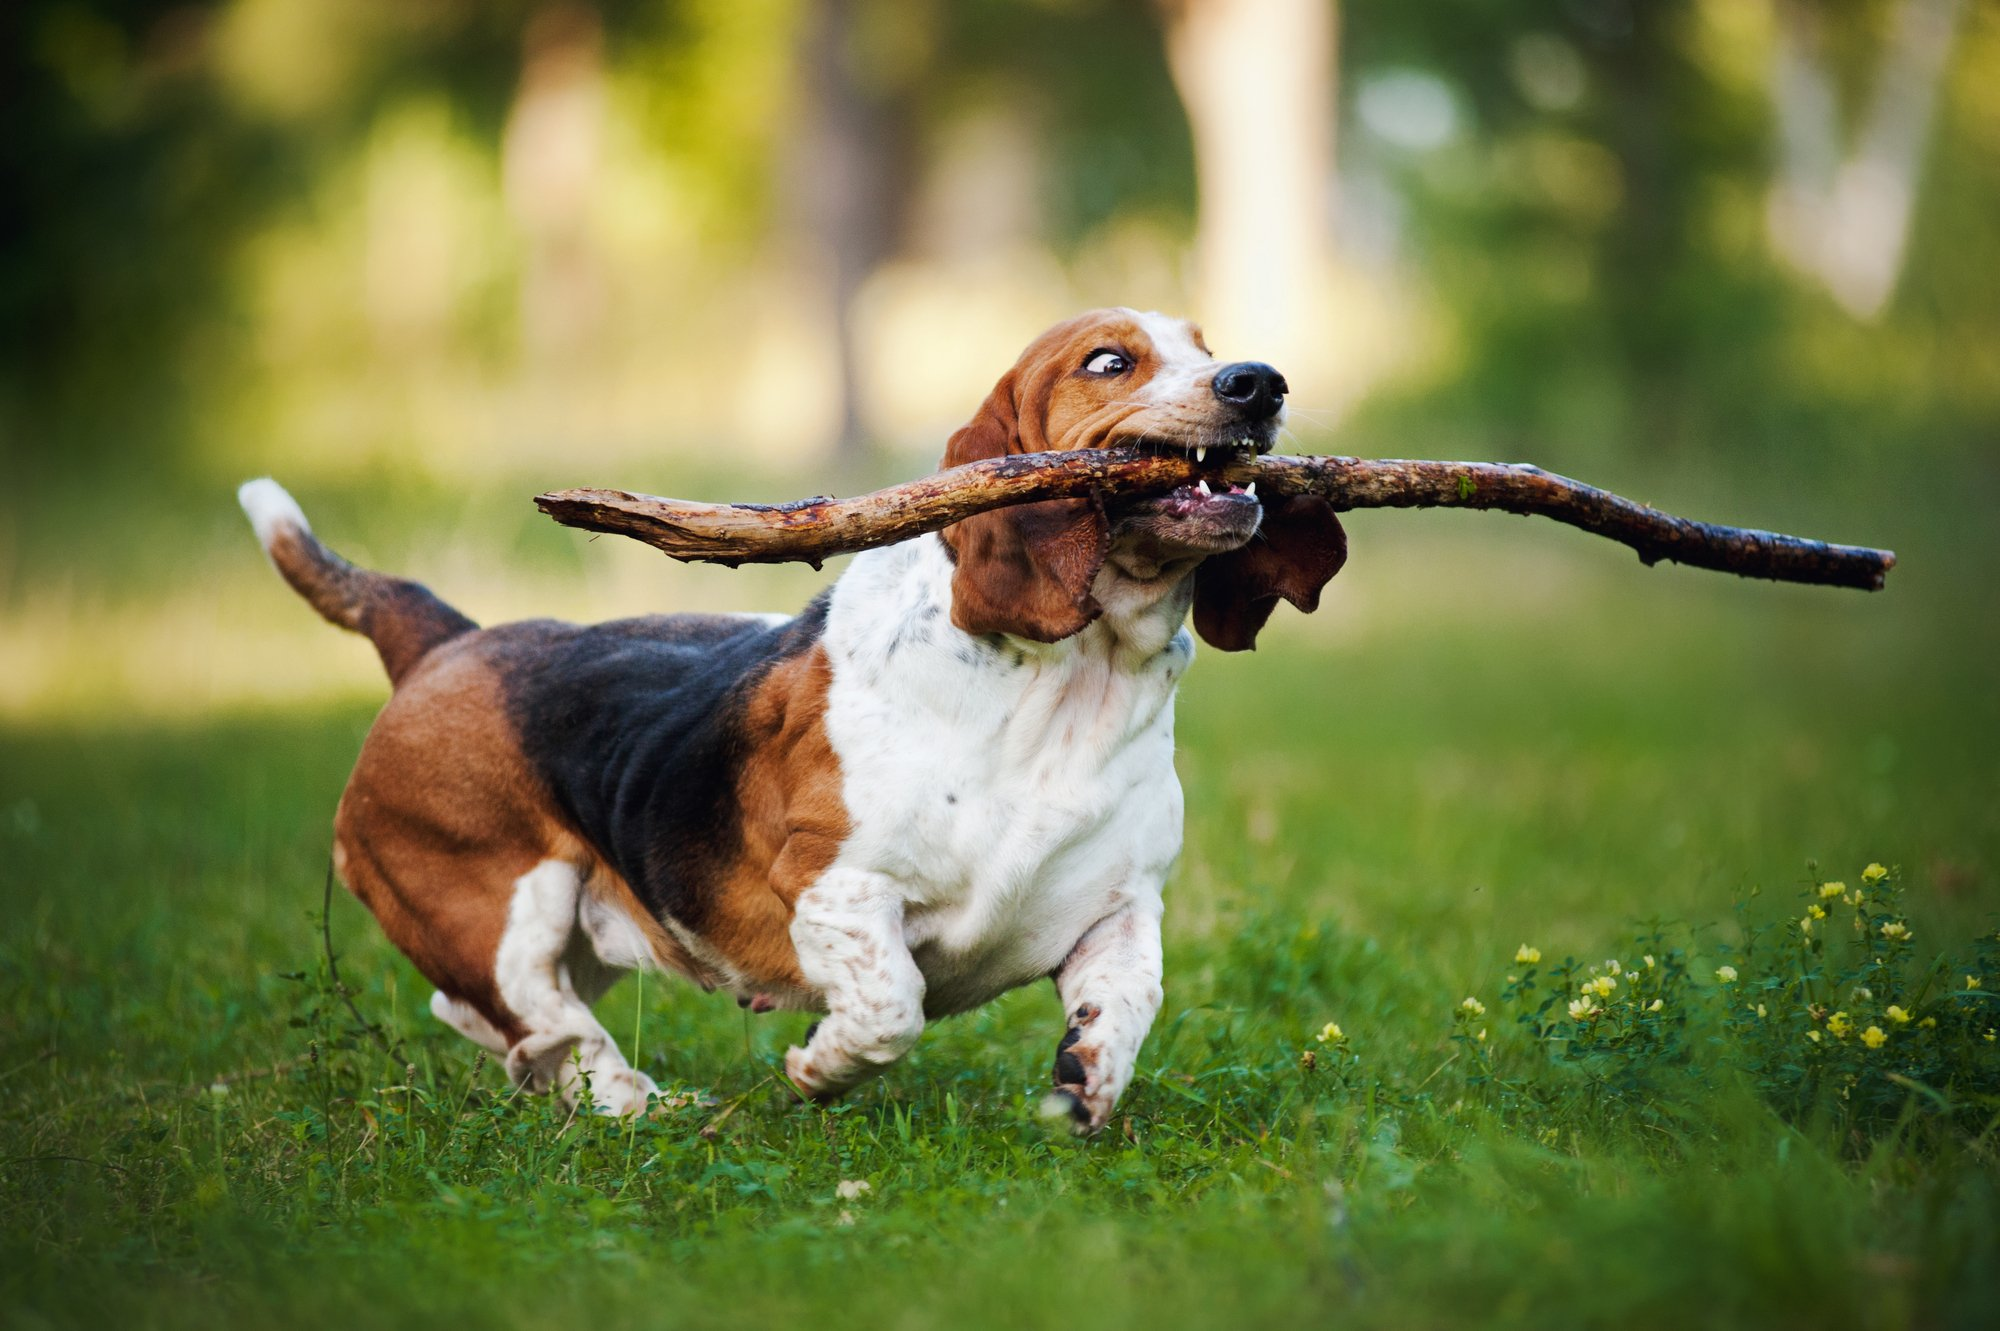 Basset Hound dog in training running on the grass with stick